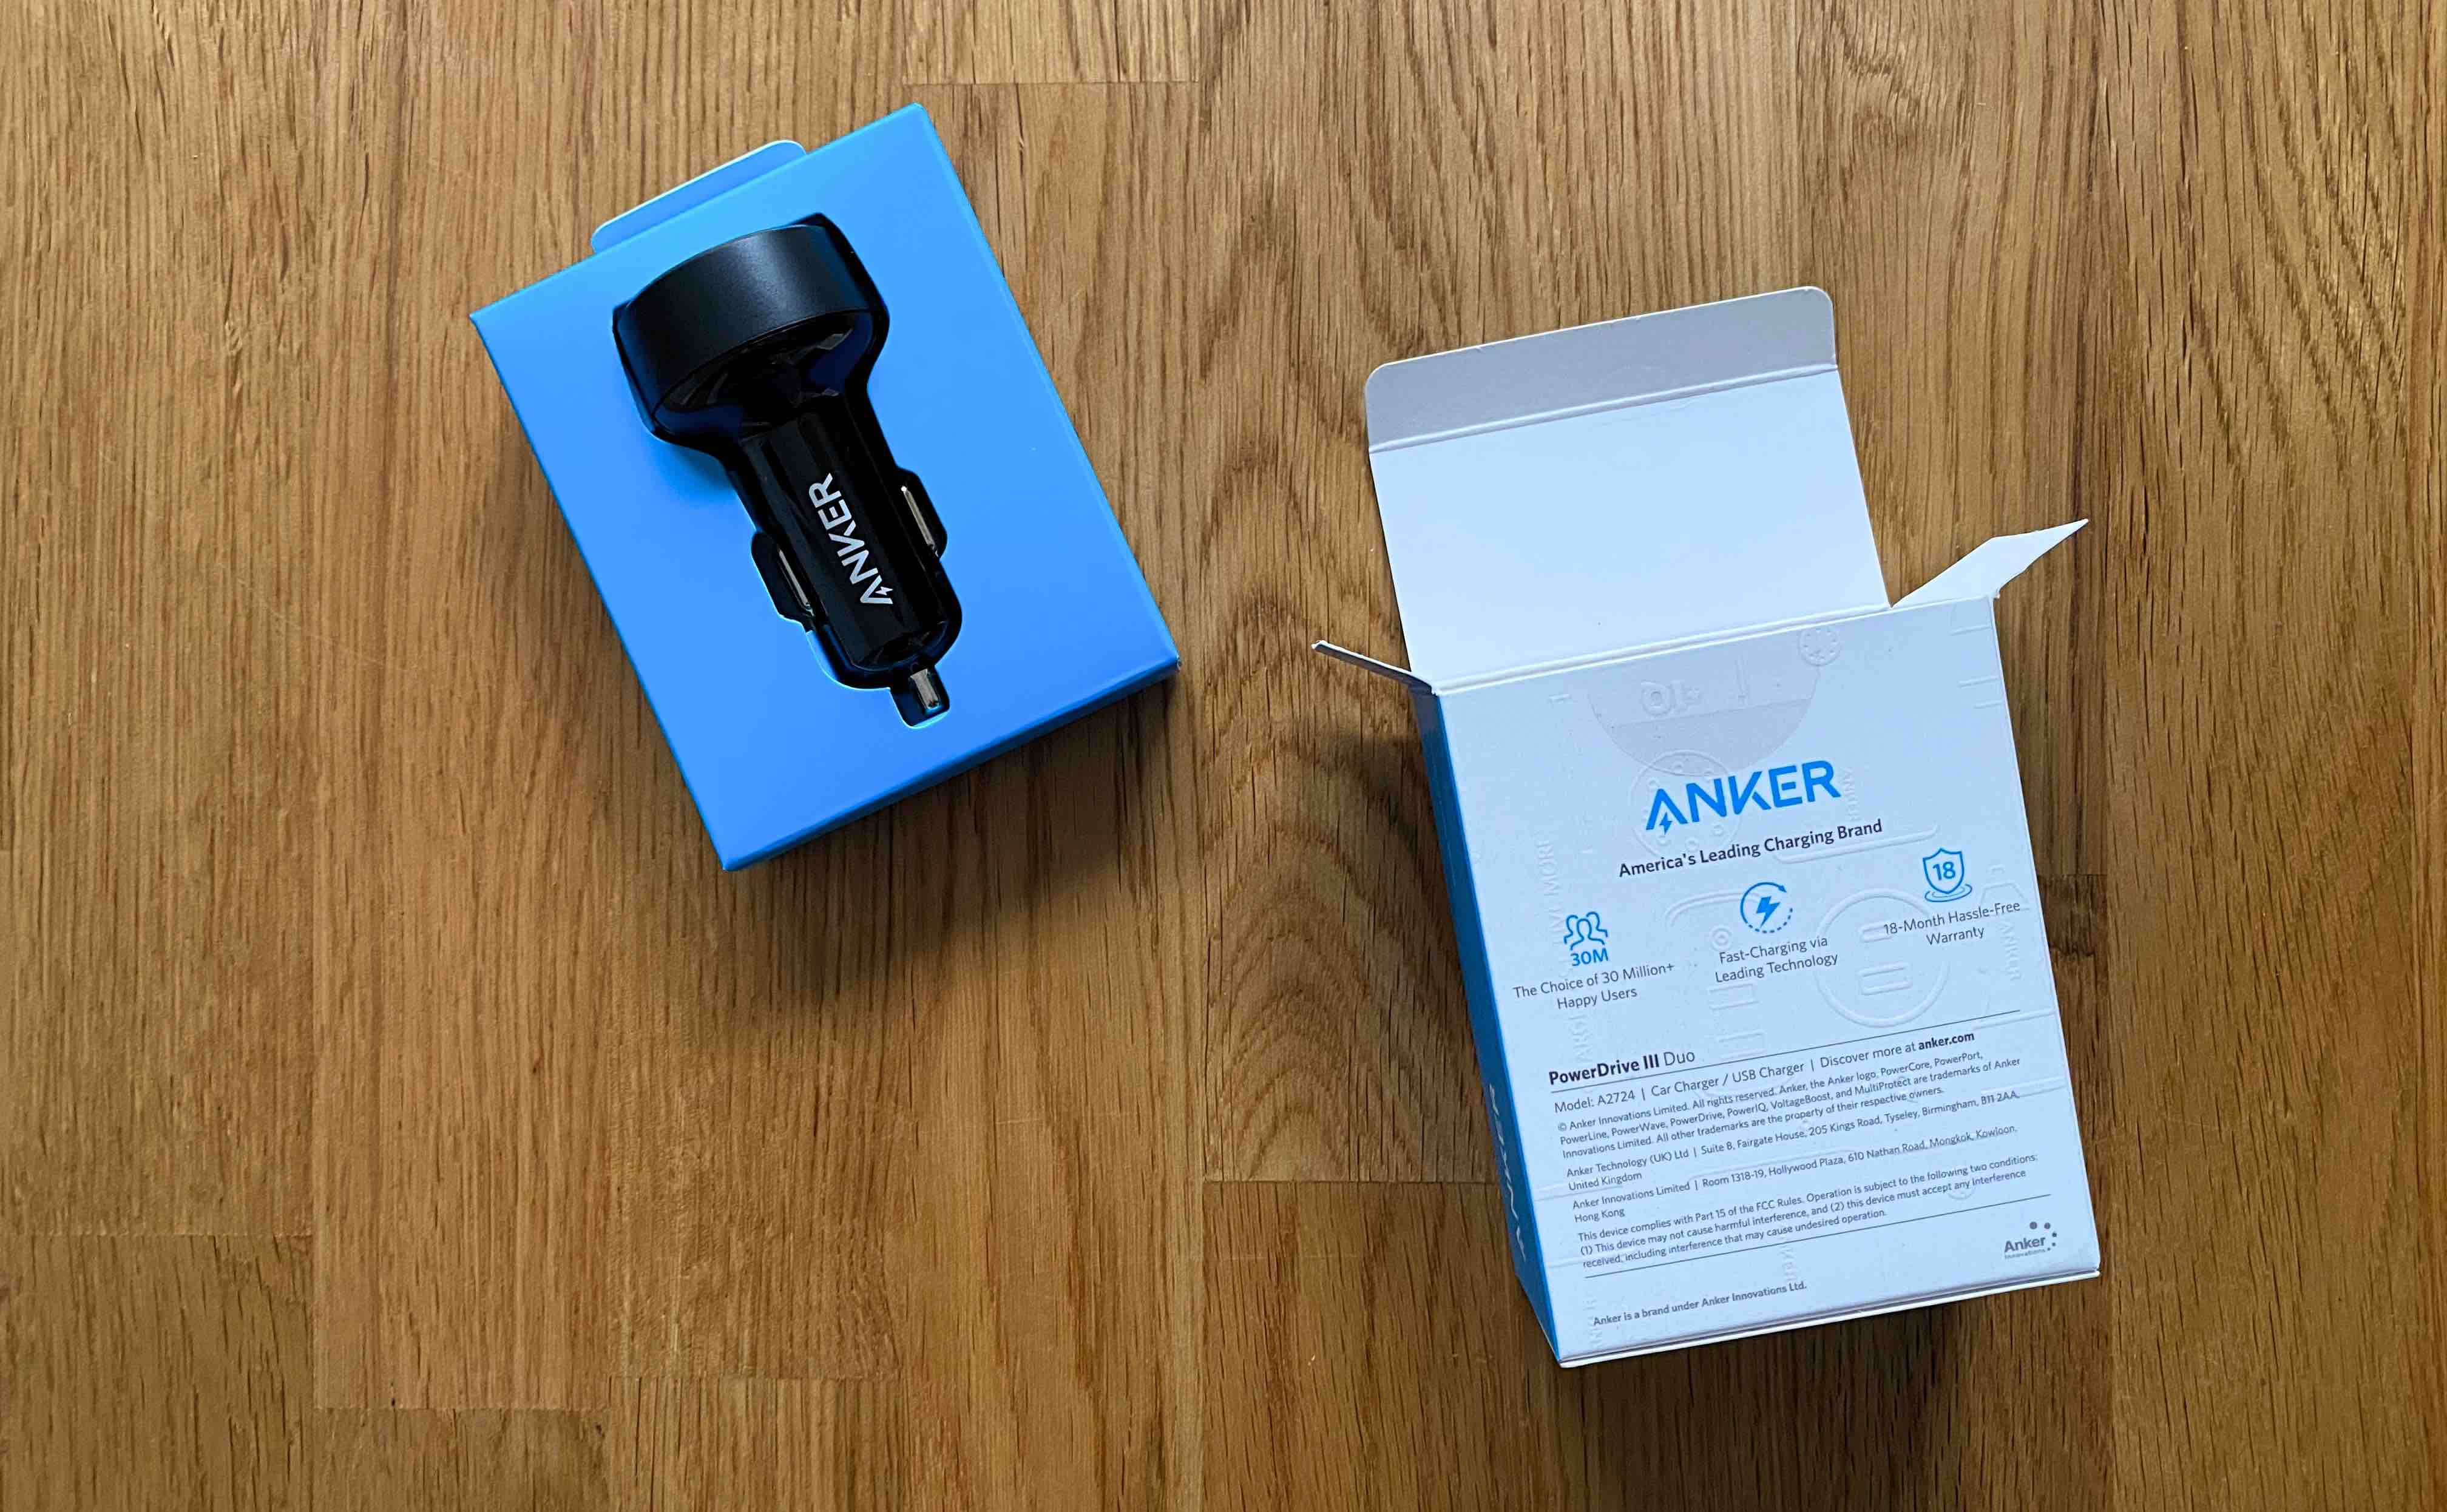 Anker_KFZ_PD_Power_Delivery_USB_C_USBC_Ladegerät_Car_Auto1 KFZ-Ladegerät mit 2 x USB-C und Power Delivery von Anker